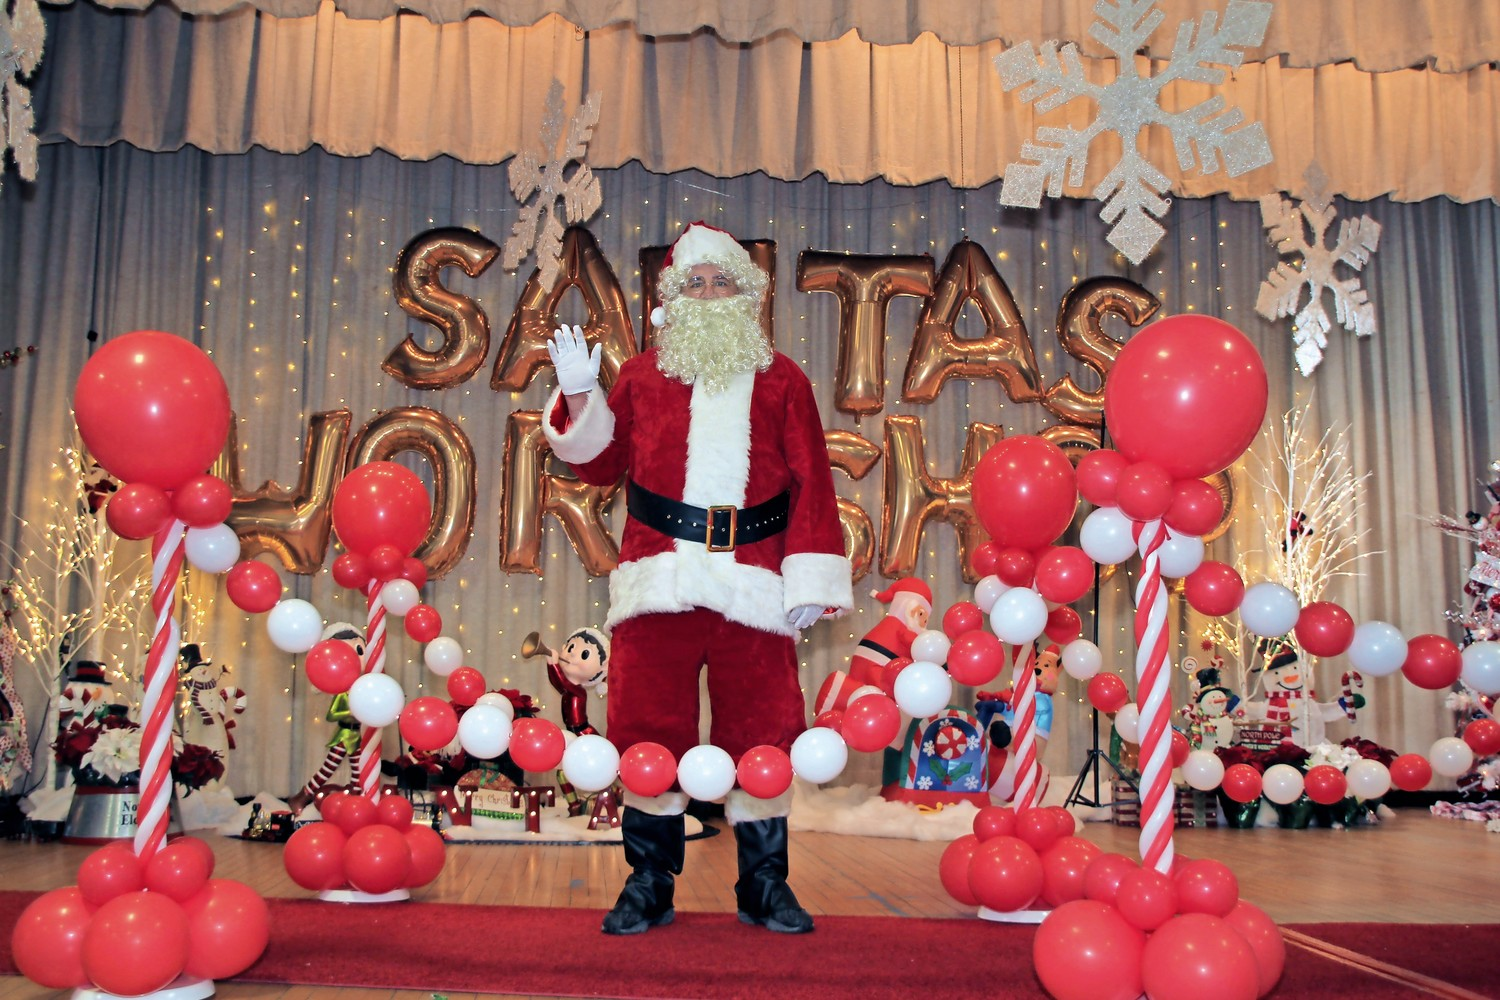 Santa, played by Kevin Bannett, paid a visit to the St. William the Abbot Catholic School Holiday Fair on Dec. 2.